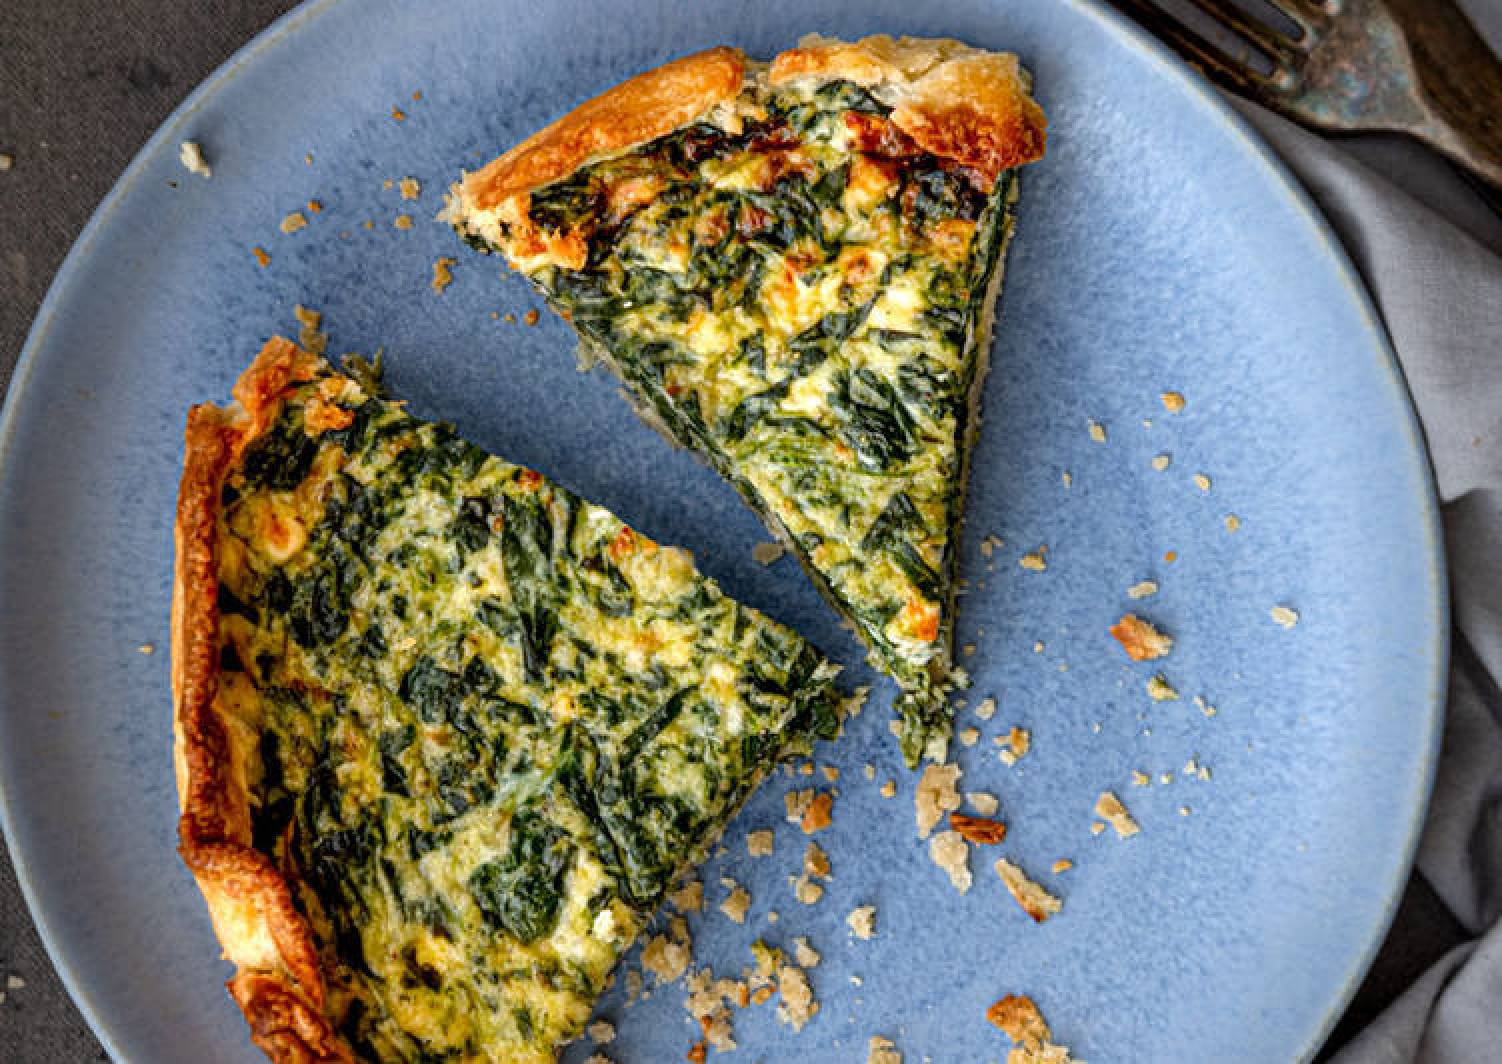 Feta & Spinach Quiche